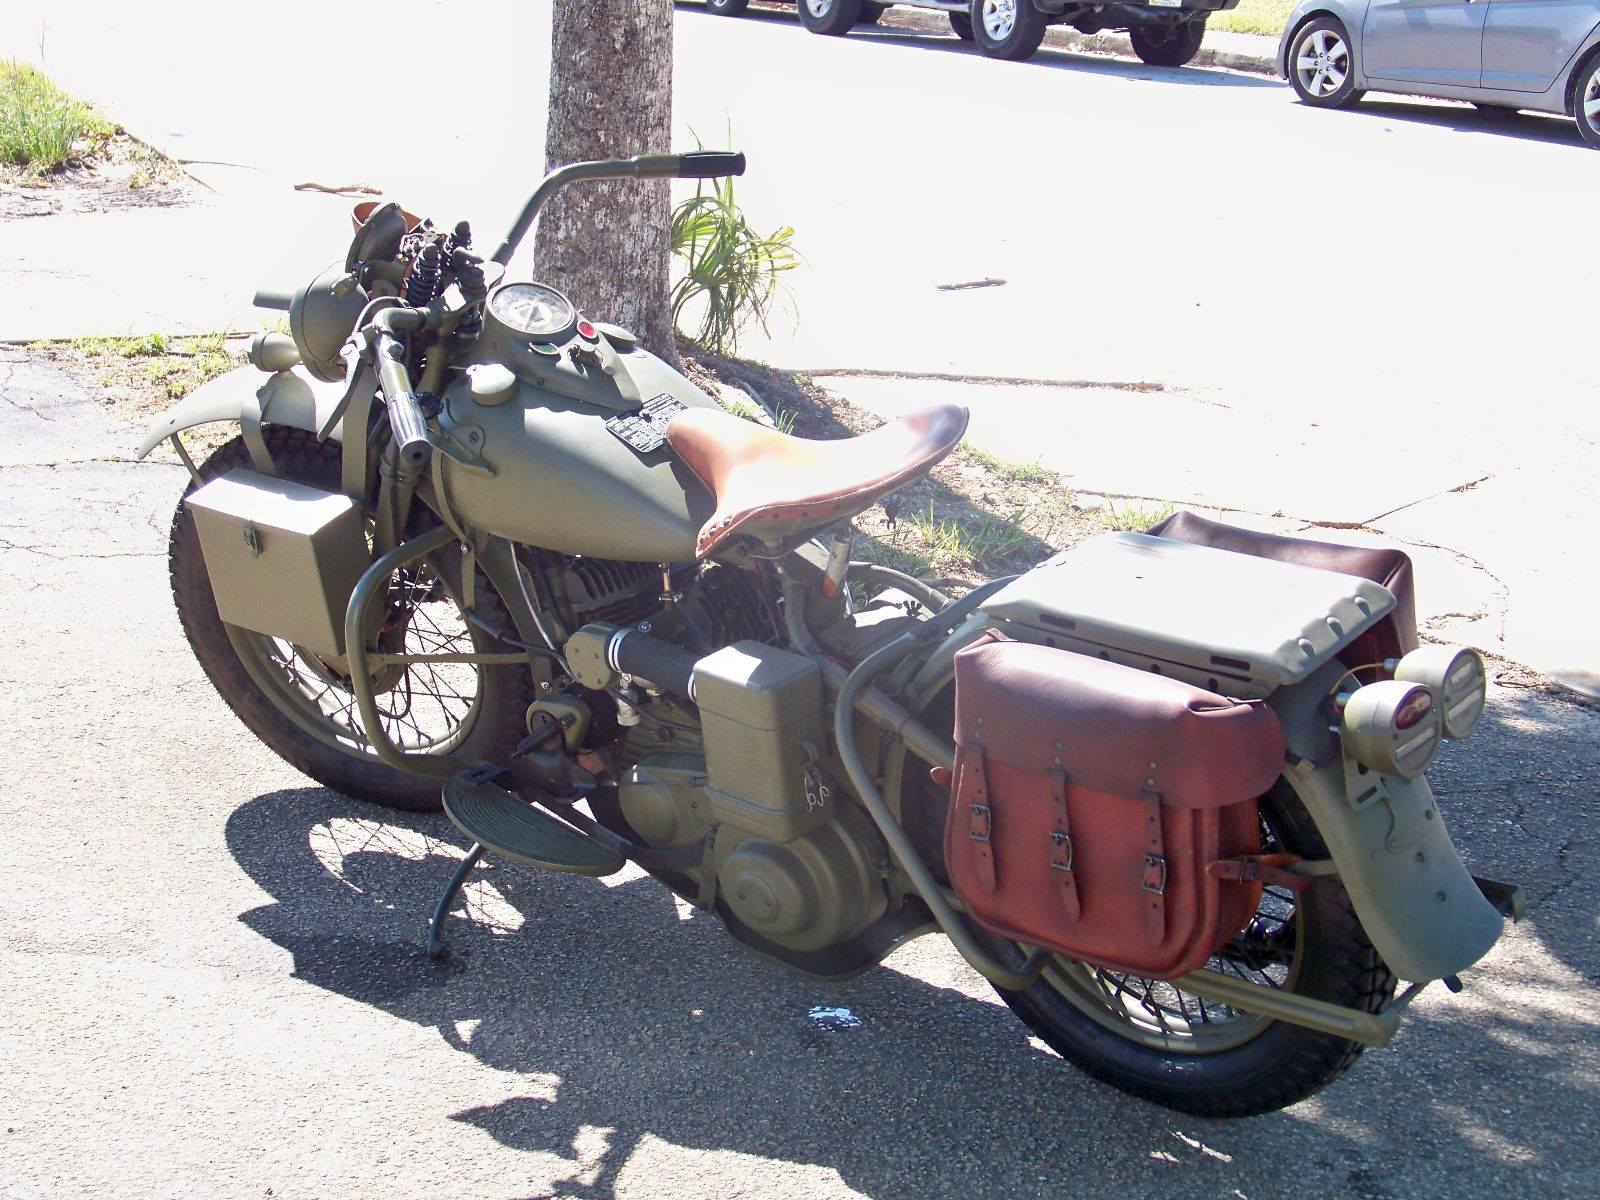 Normal equipment for the Harley Davidson WLA includes saddle bags and a substantial rear carrier for radio equipment, front boxes, and scabbard for a Thompson M1A1 .45ACP sub-machine gun for rider self protection.